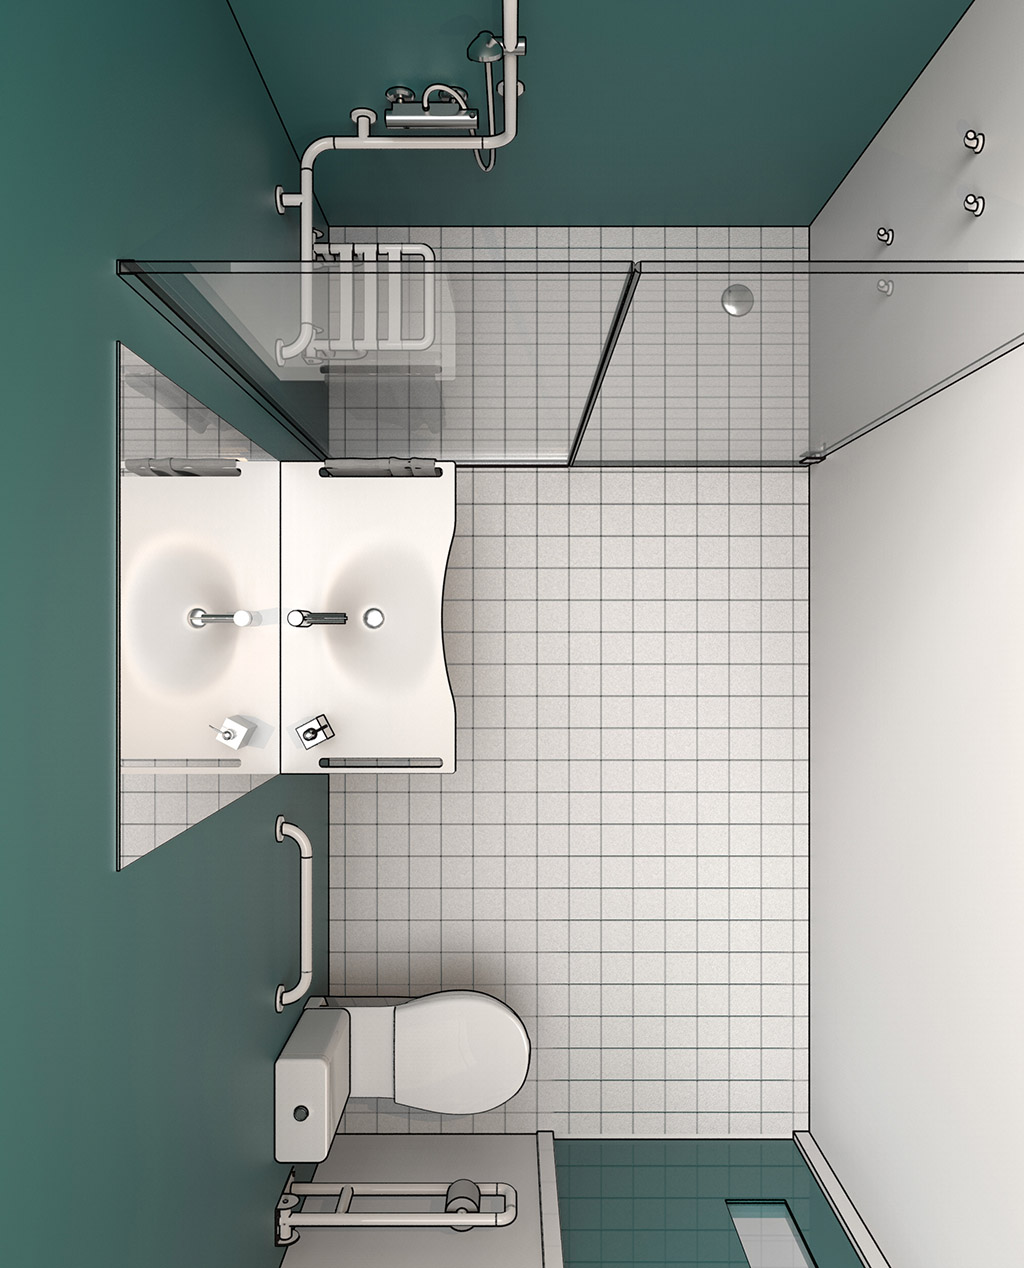 Bathroom For Disable Accessories For Furnishing Security